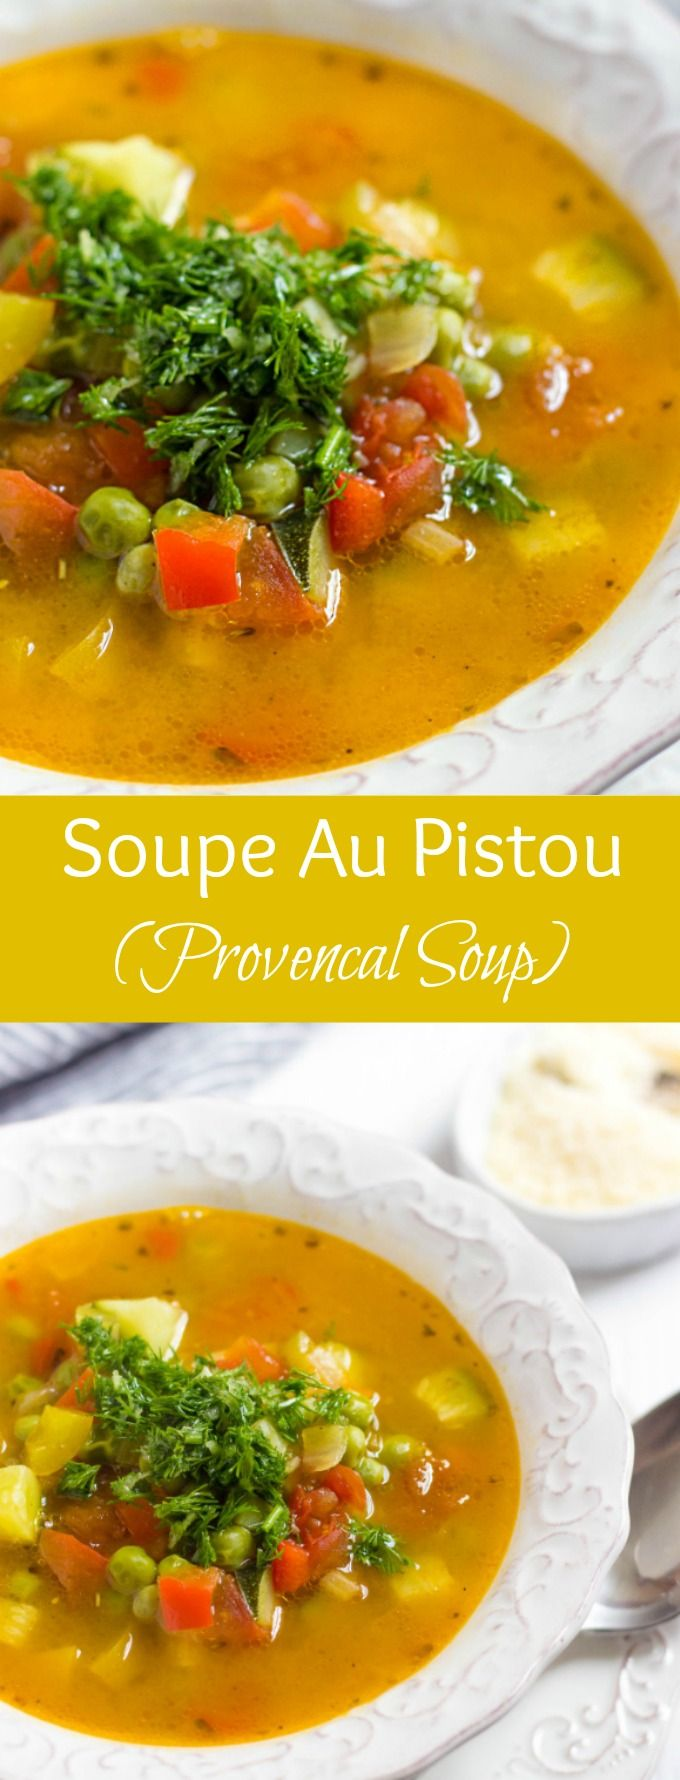 This classic French vegetable soup is BURSTING with flavor and so easy to make. Soupe Au Pistou is healthy and delicious soup you'll love.